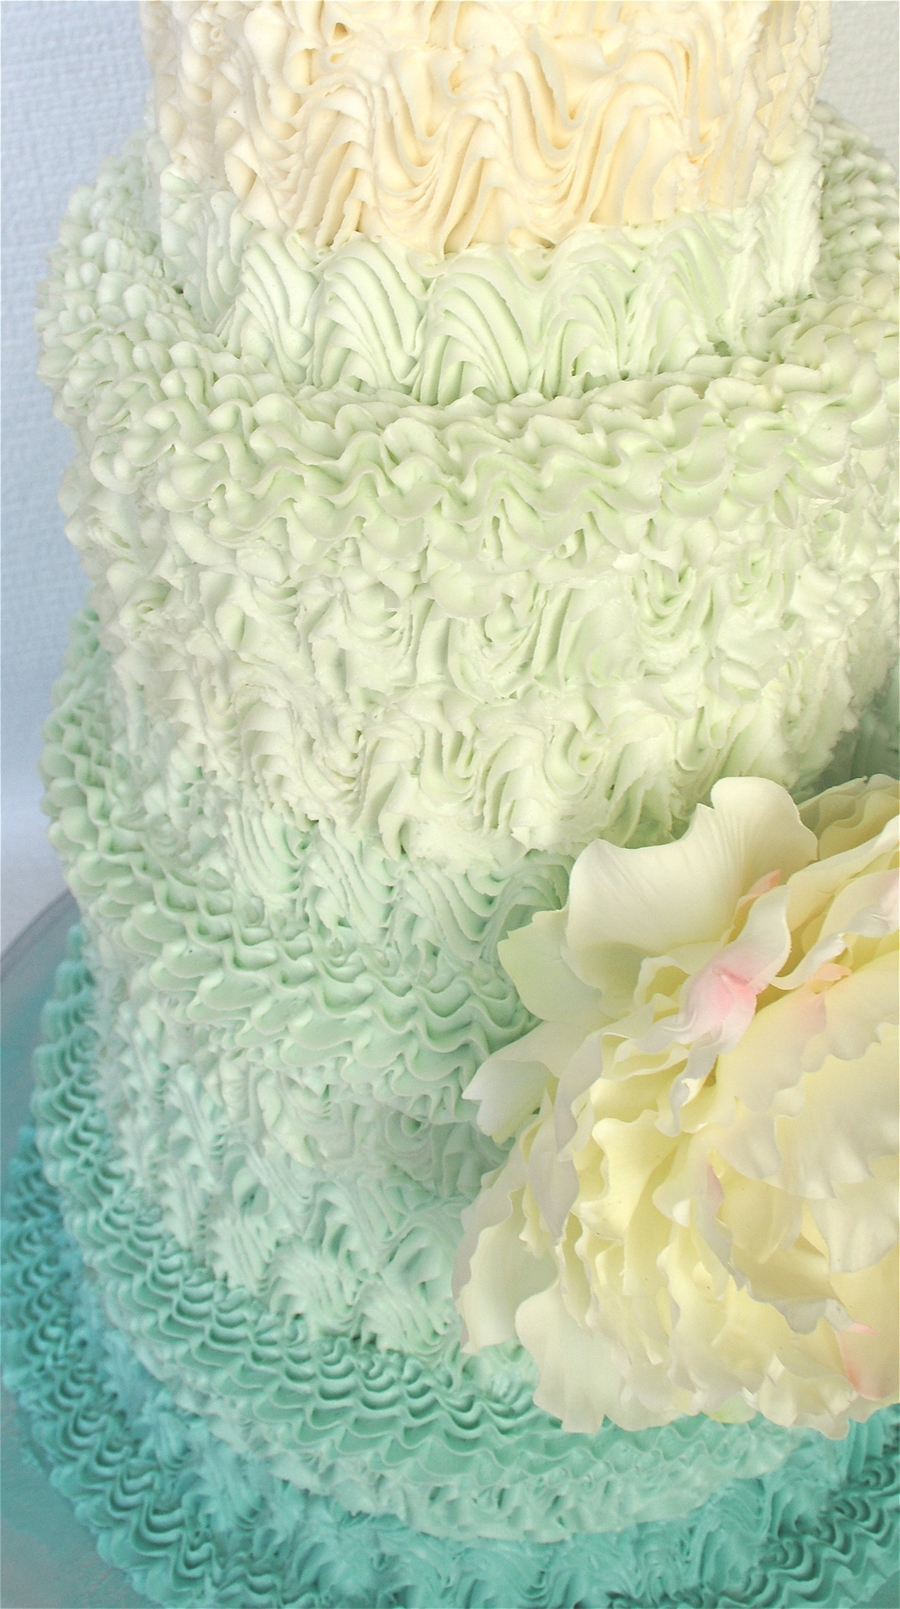 Turquoise Ombre With Peony By Mili - CakeCentral.com